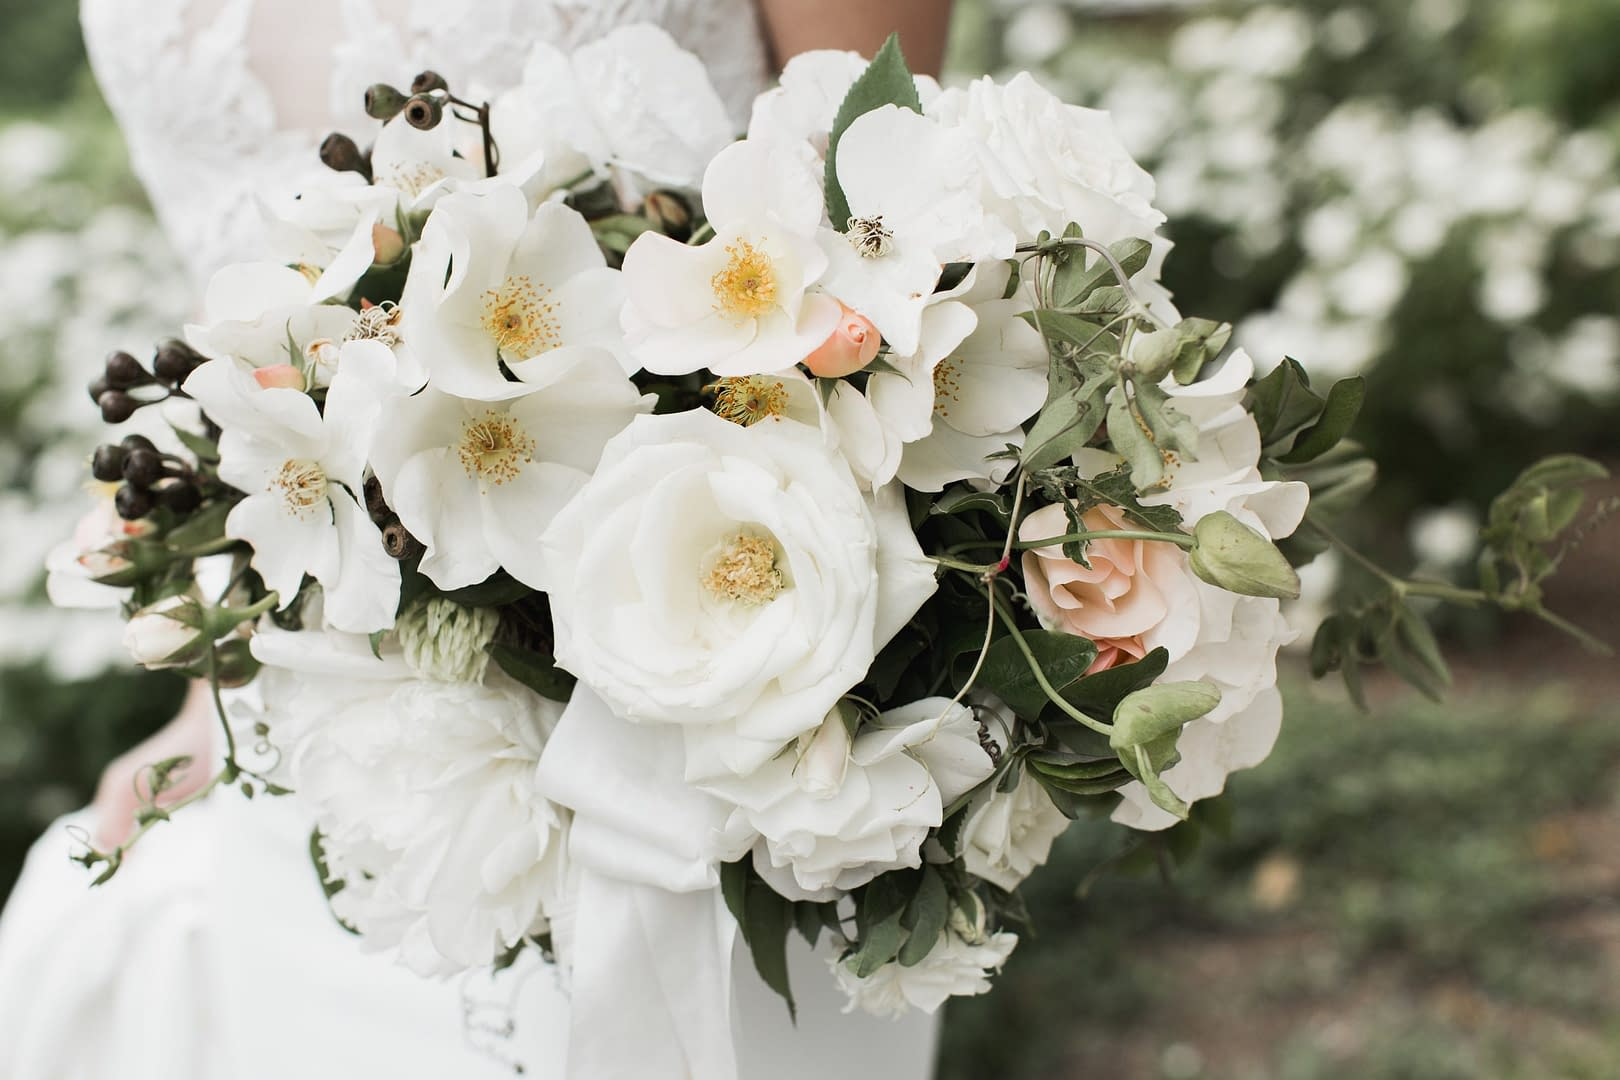 Spring green, peach and white bridal bouquet by Nectar and Root, Vermont wedding florist at Shelburne Museum in Shelburne, Vermont.